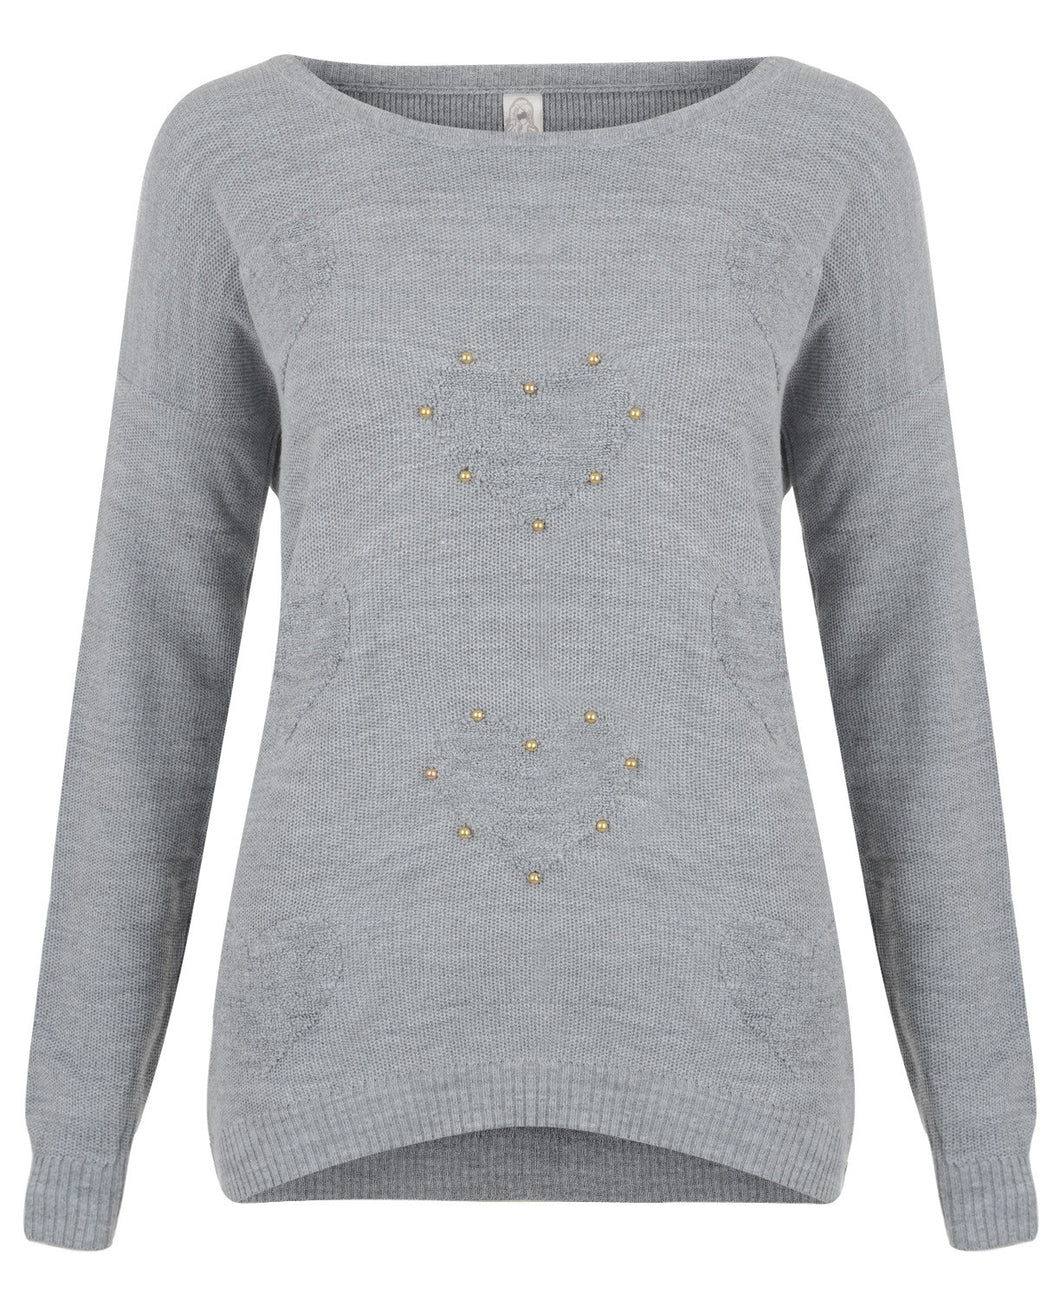 Stud Hearts Jumper Grey